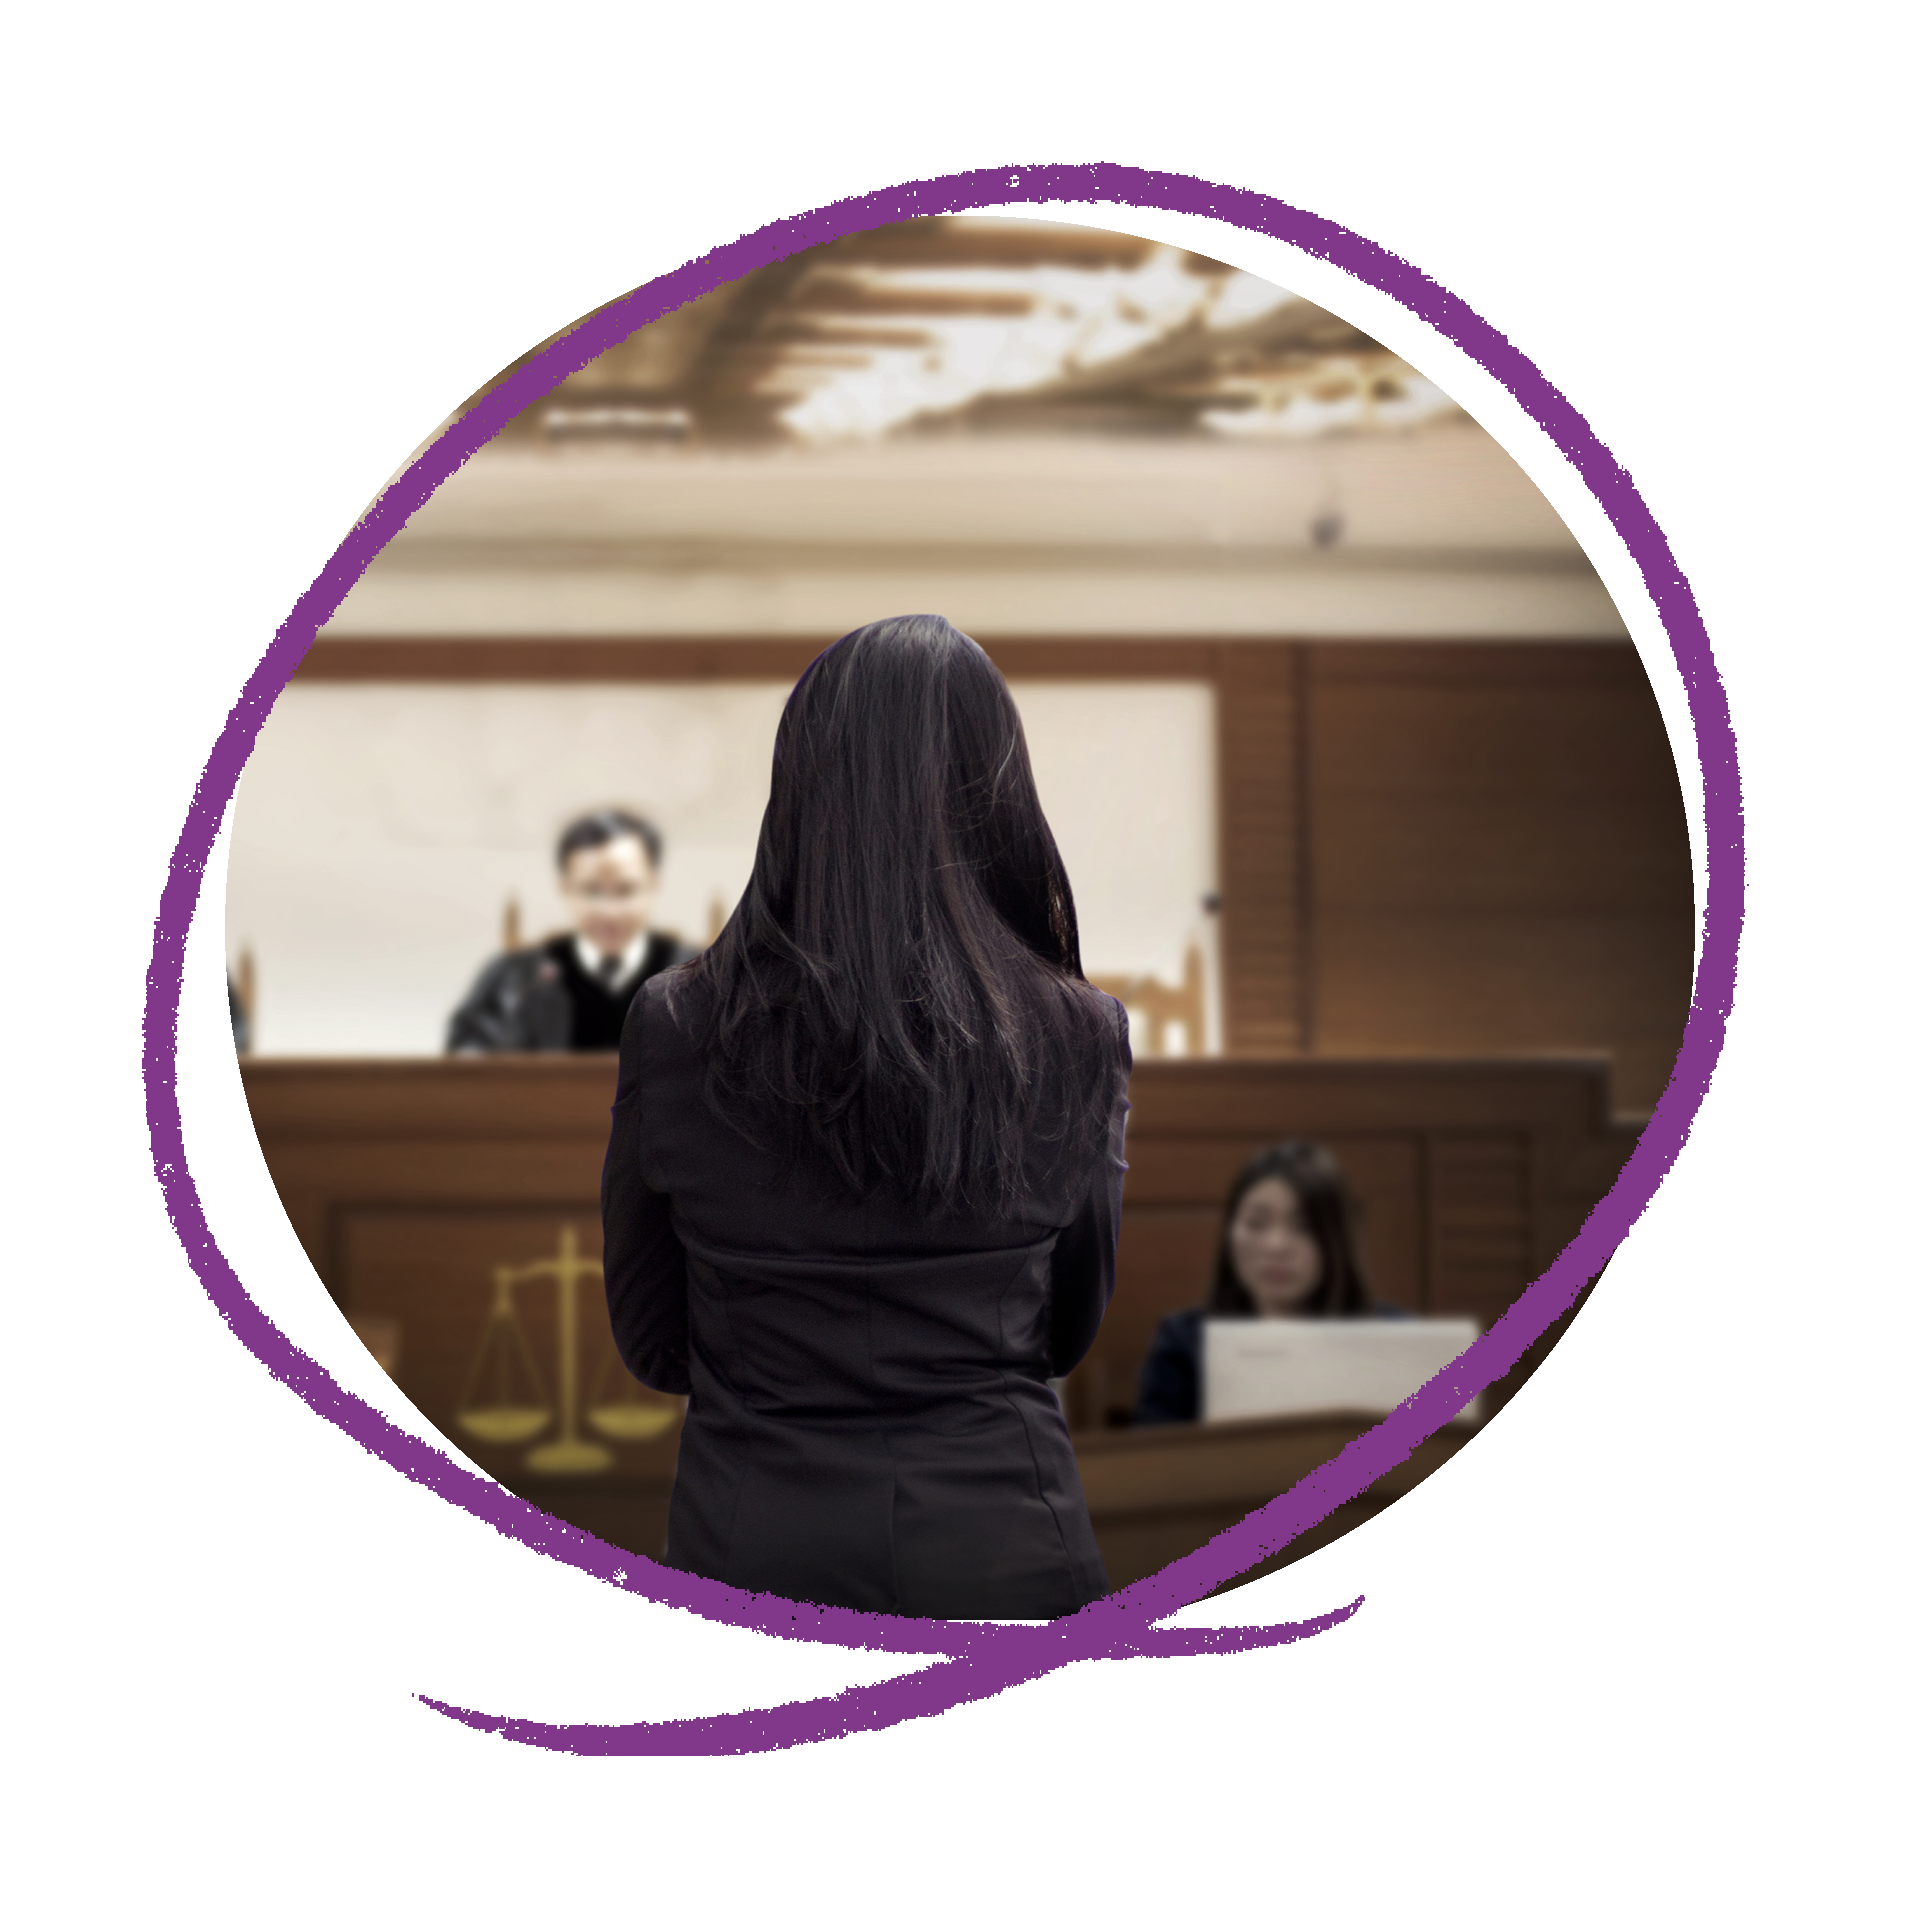 A woman with long dark hair standing up in court room looking towards a male judge.